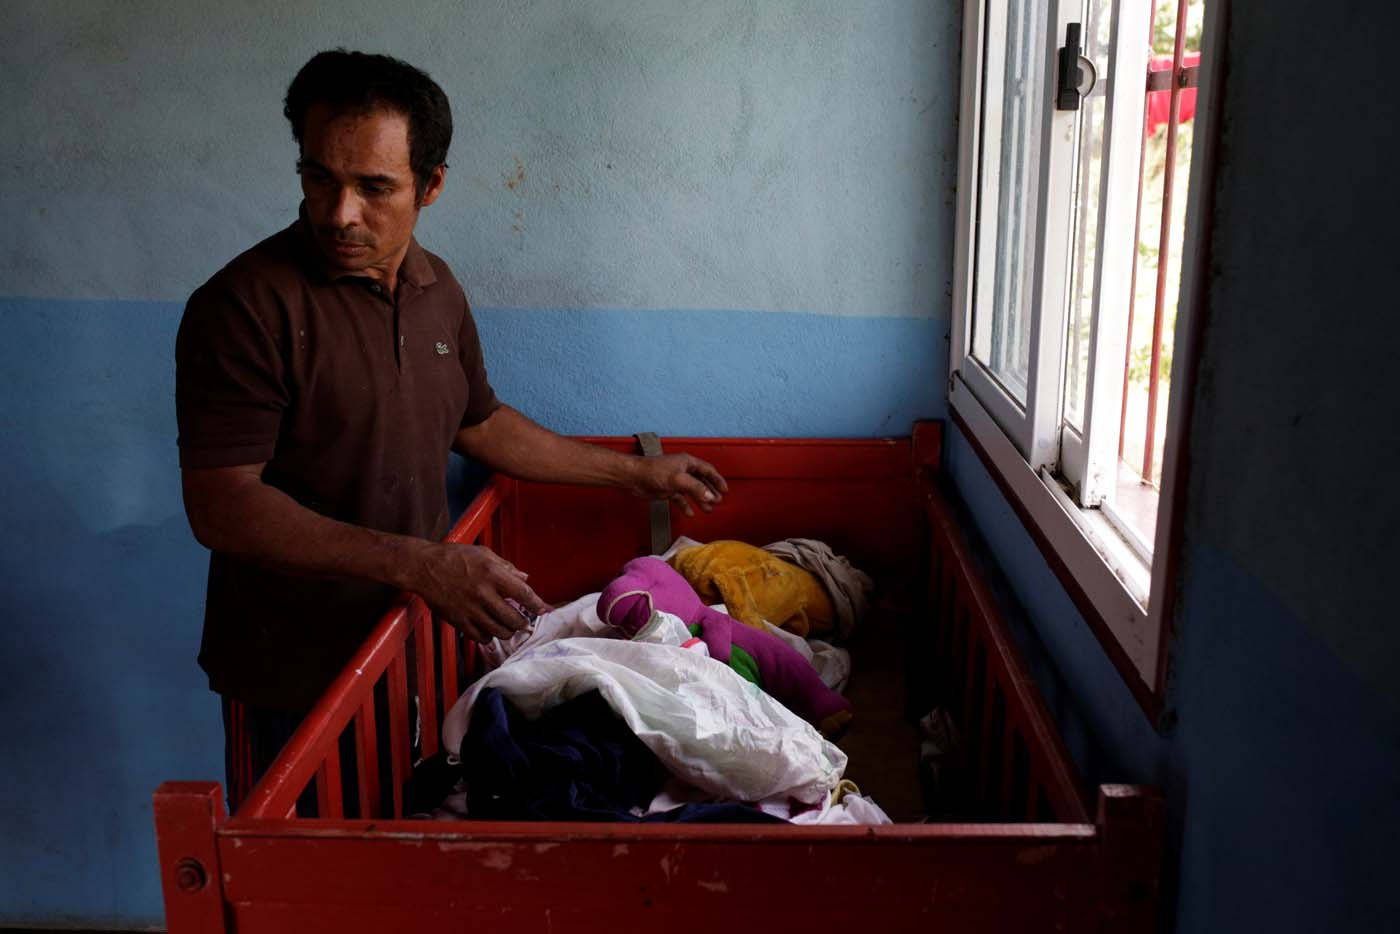 Tulio Medina, father of Eliannys Vivas, who died from diphtheria, puts clothes on a cot at his home in Pariaguan, Venezuela January 26, 2017. Picture taken January 26, 2017. REUTERS/Marco Bello